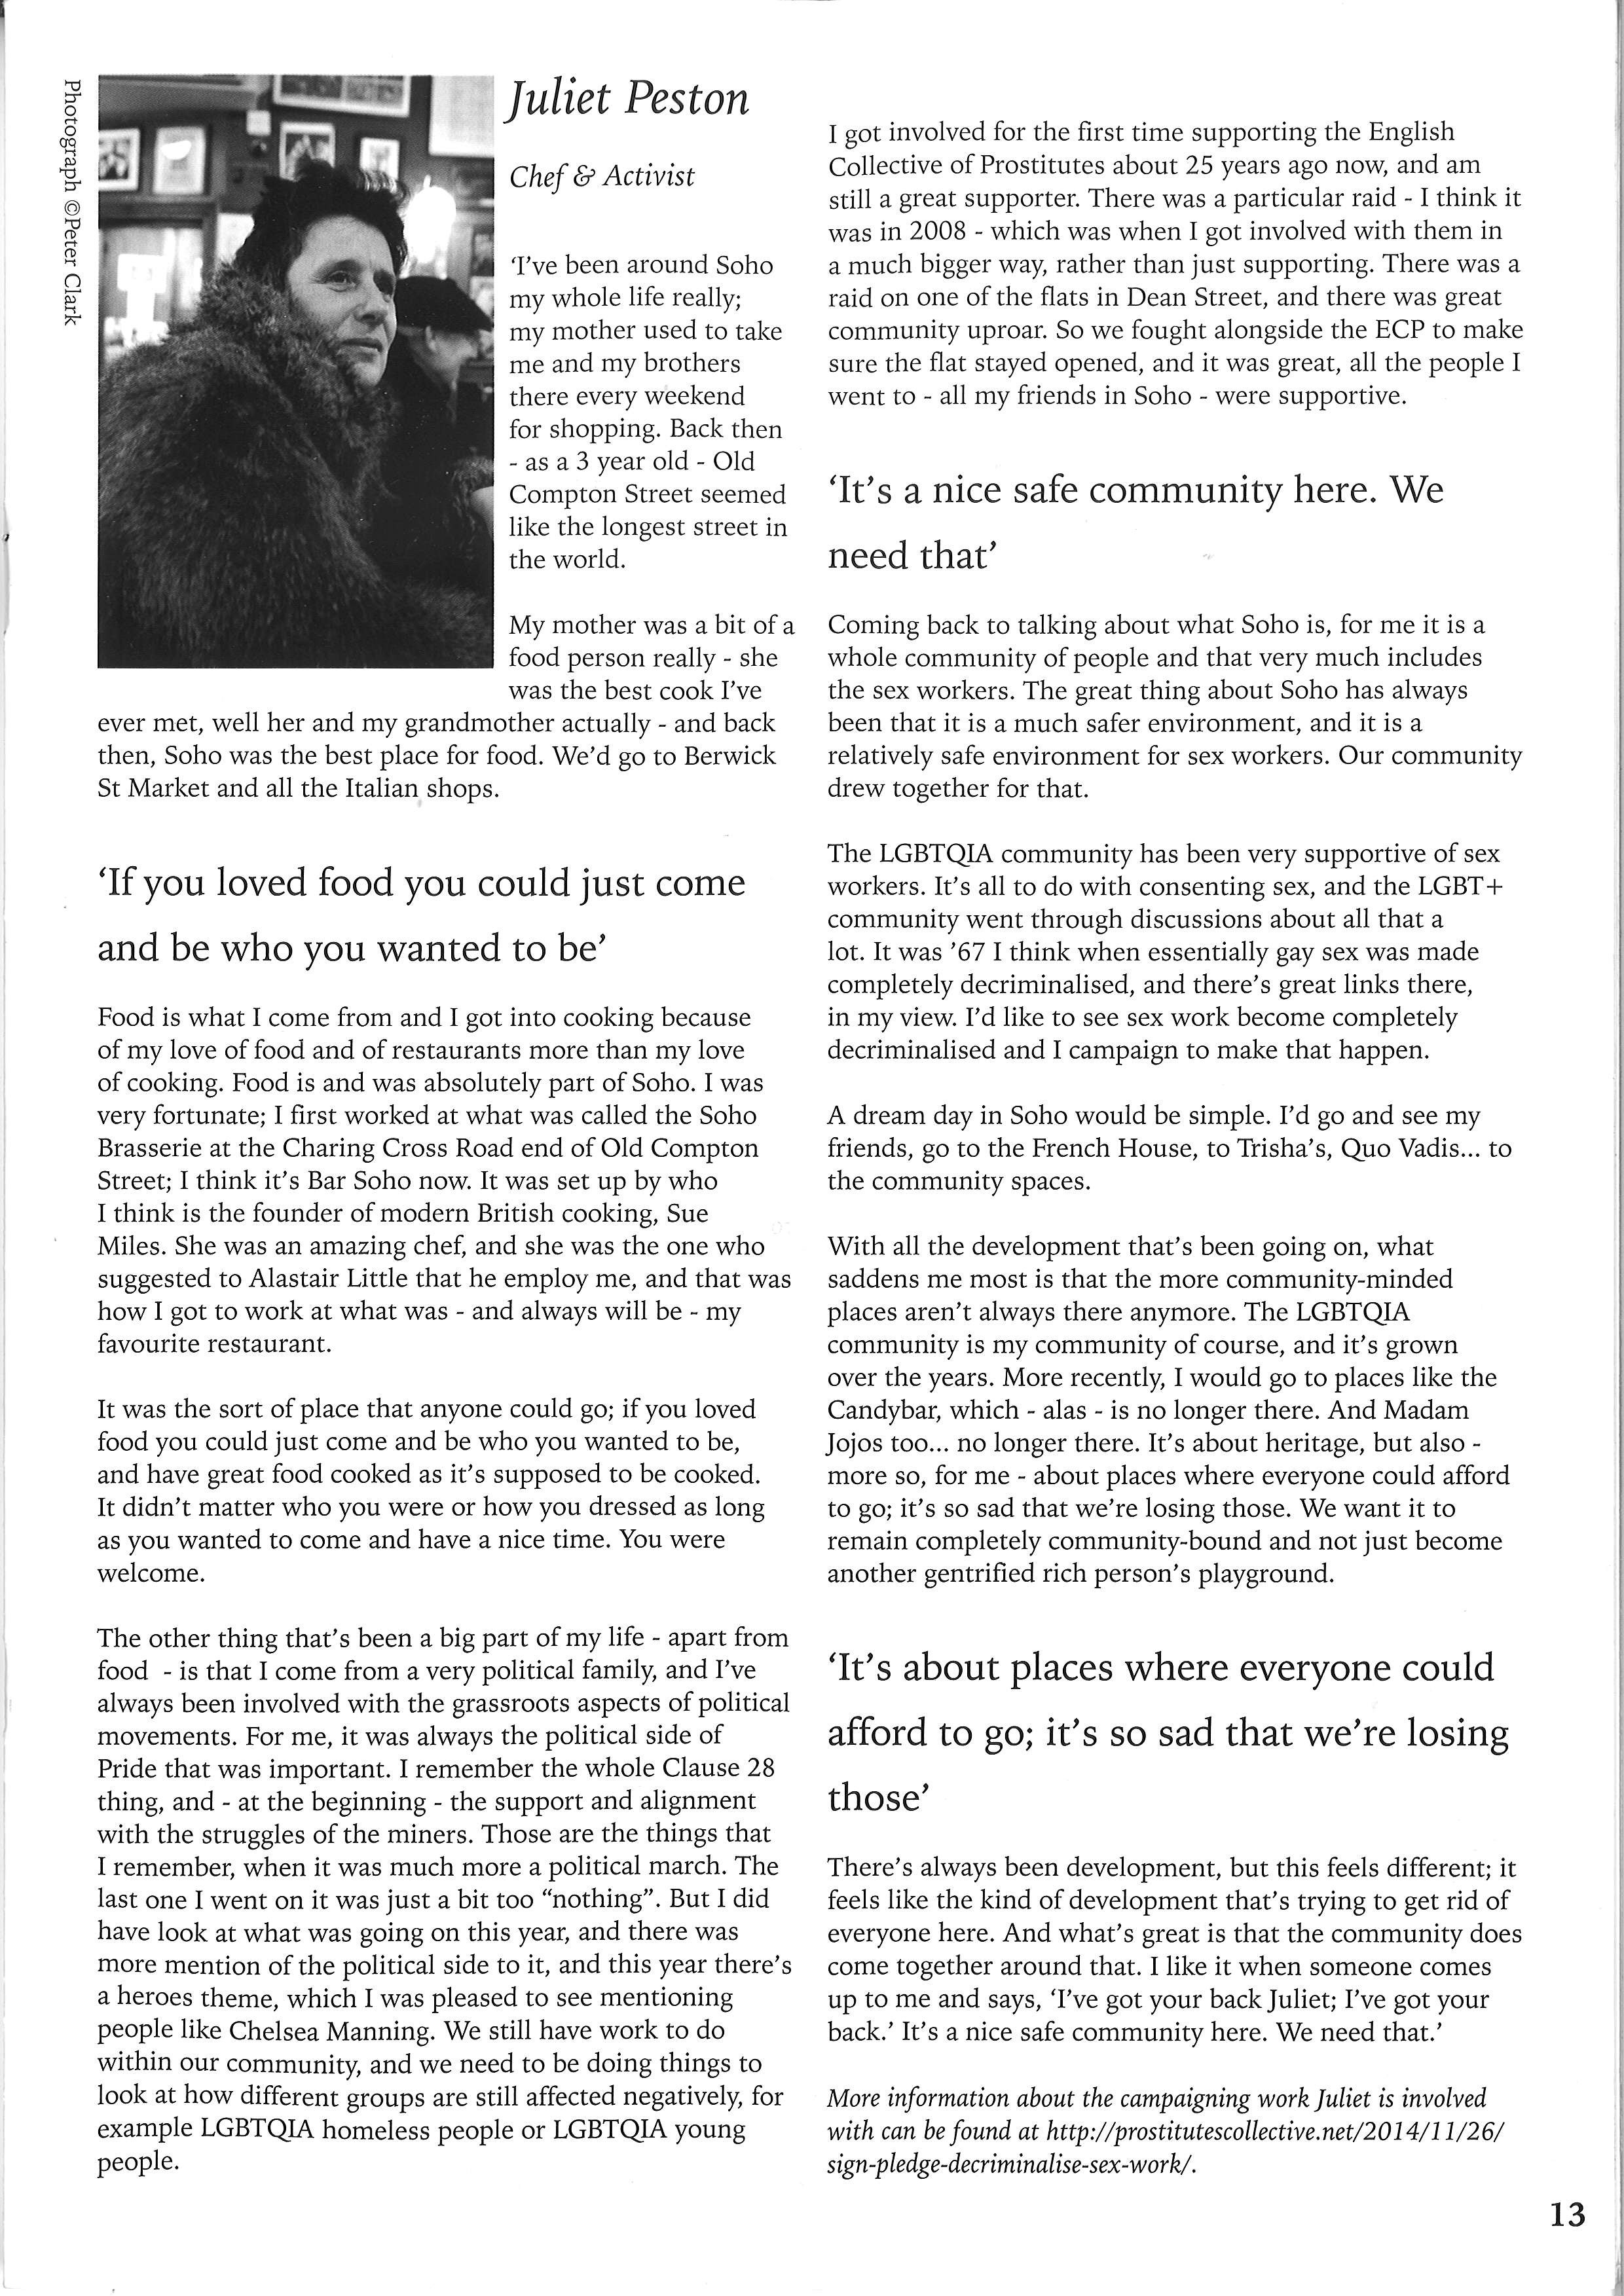 Jul article in Soho Clarion